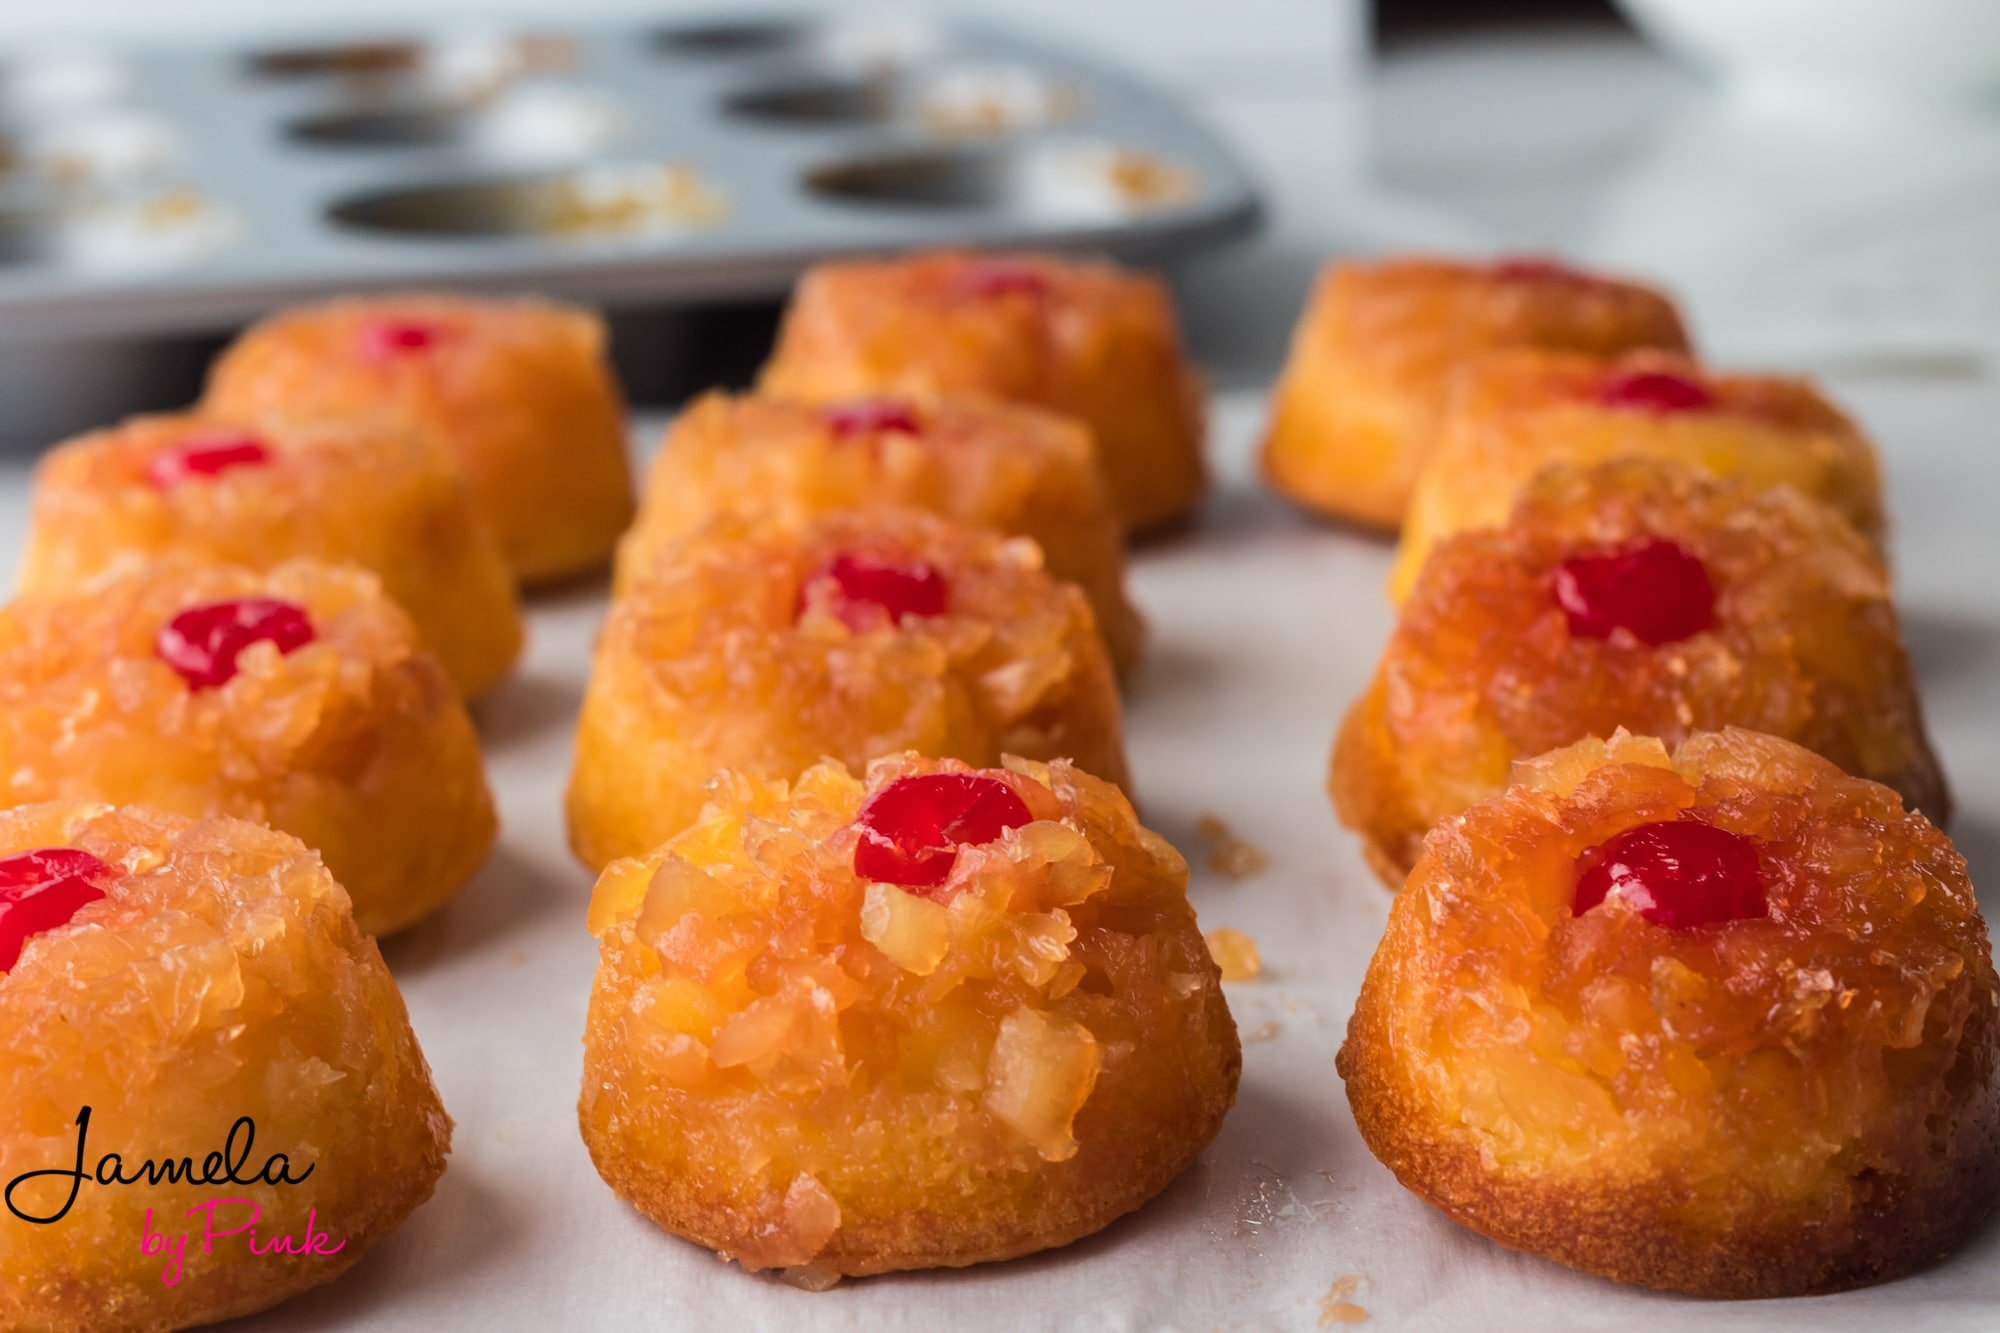 mini pineapple upside down cakes lined up on a white table